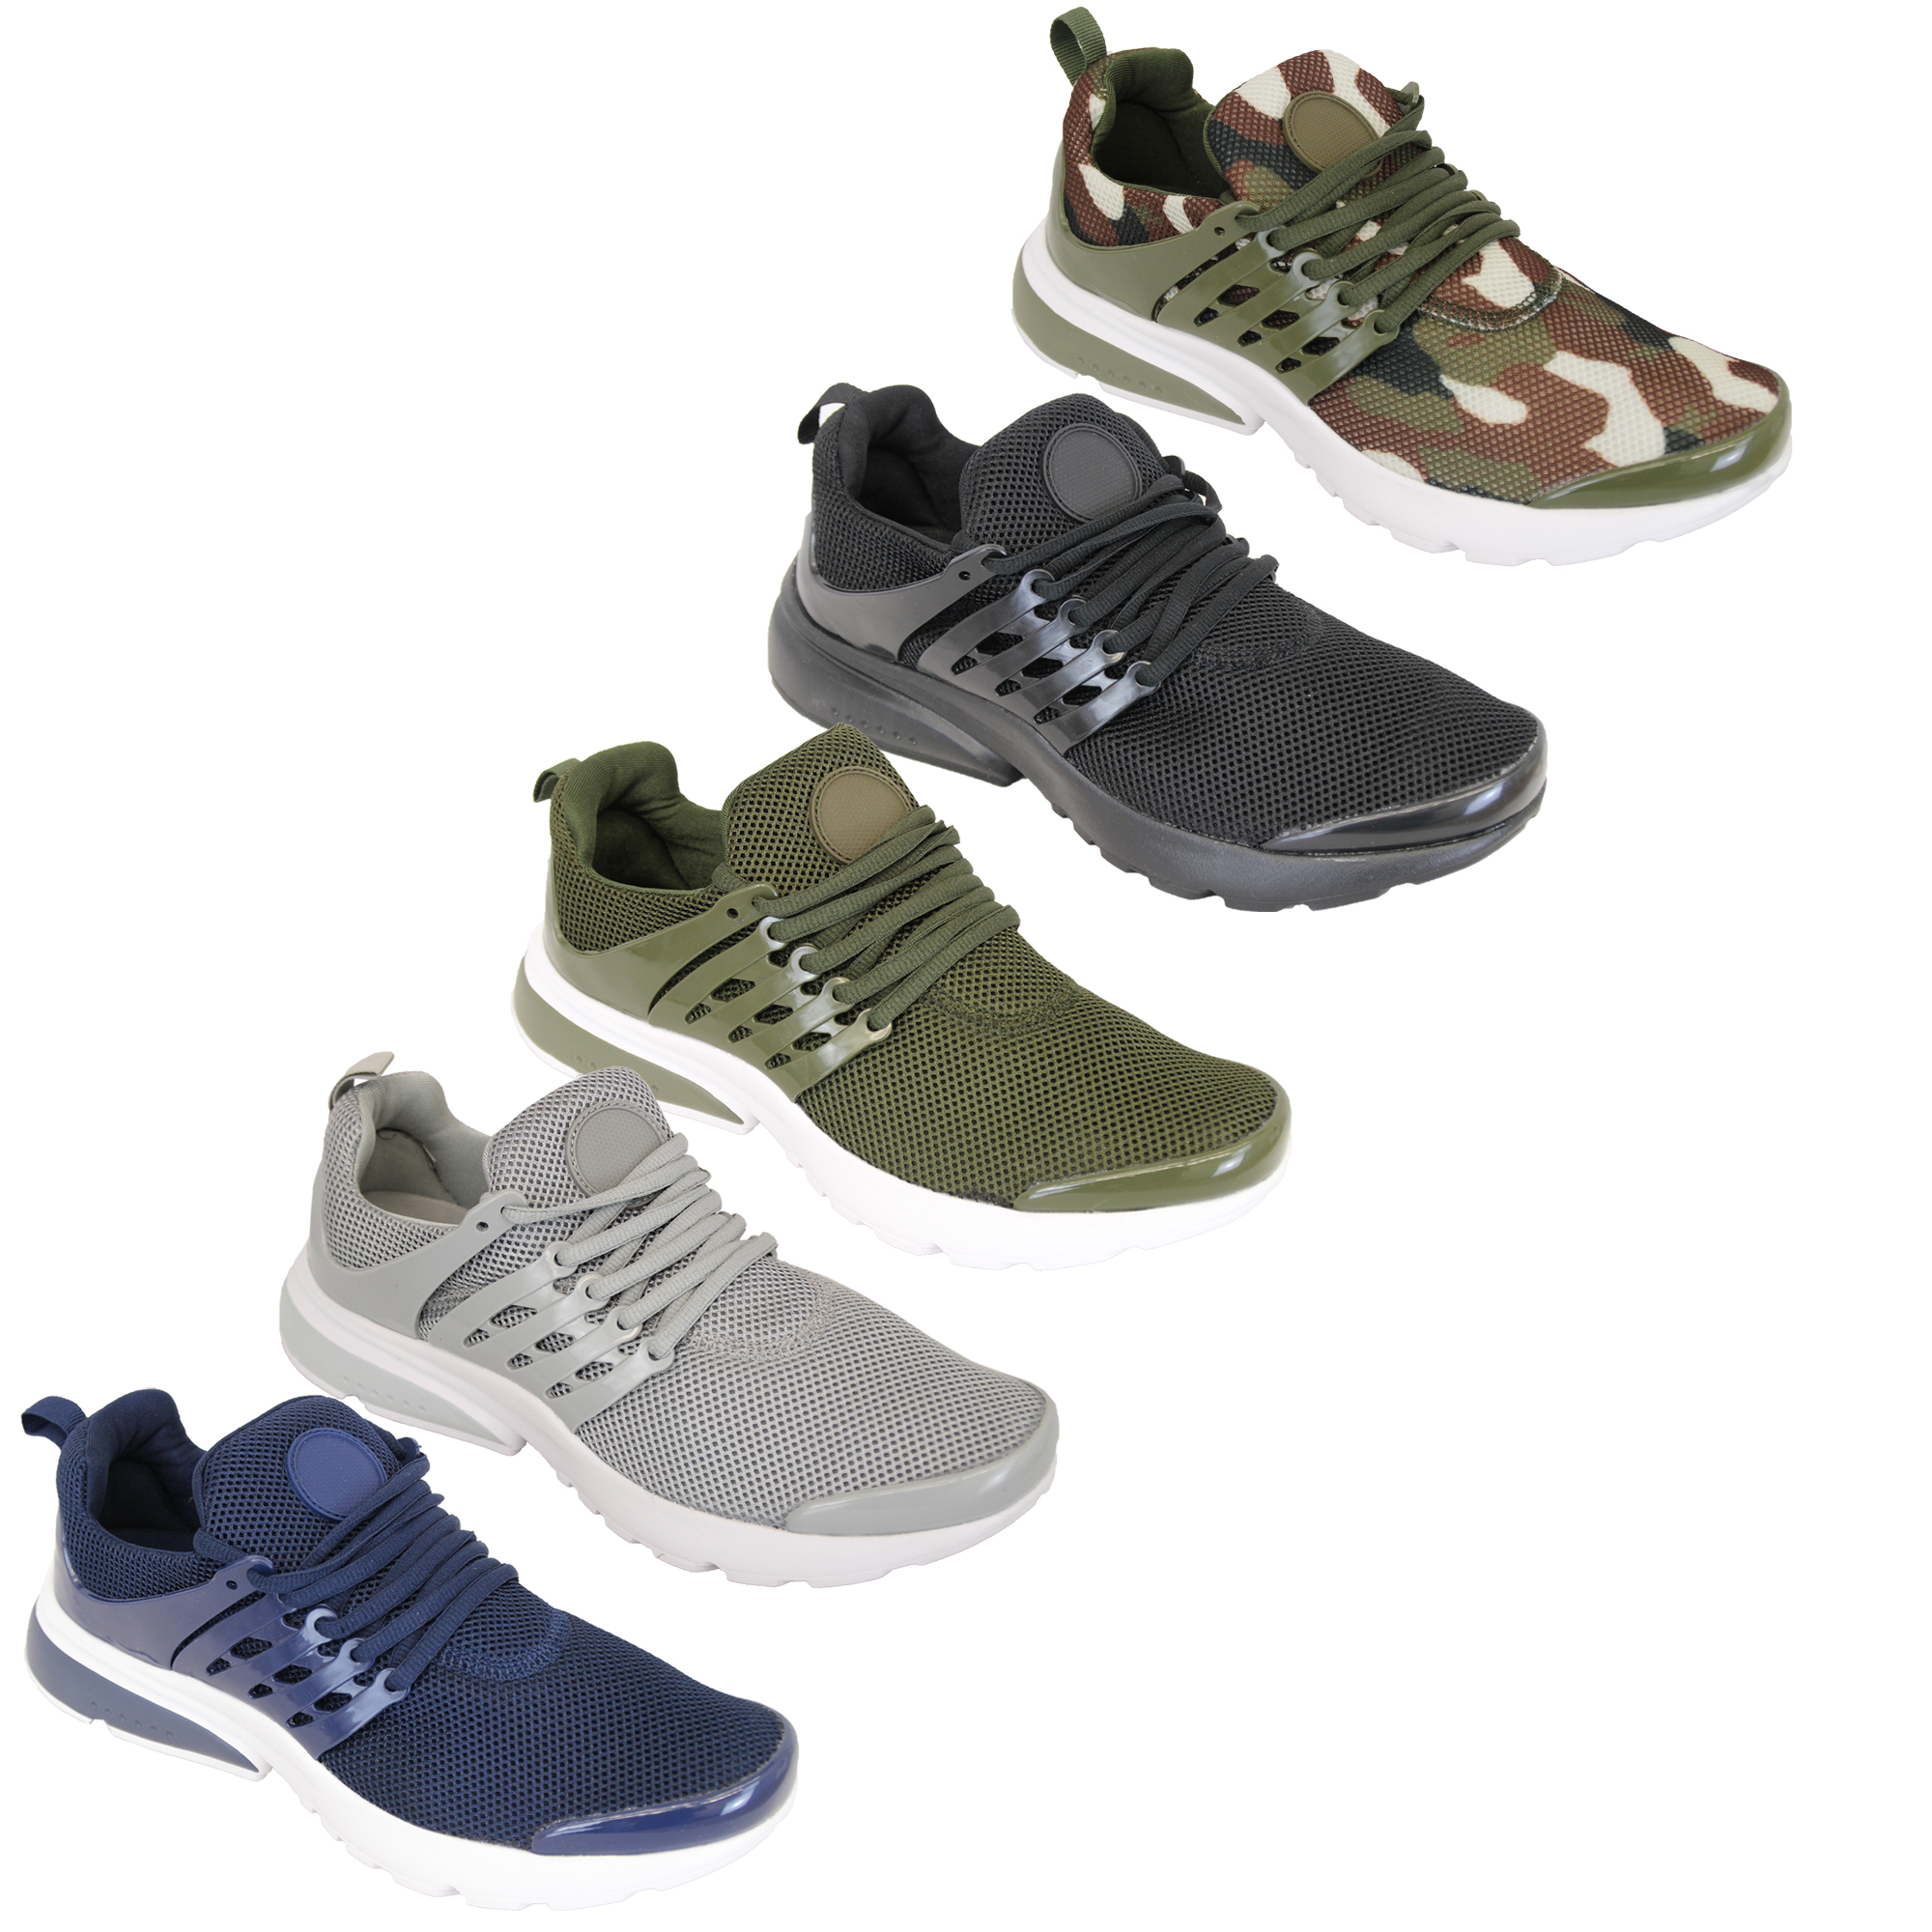 9745cbccc14d Mens Trainers Lace Up Camo Active Running Jogging Army Gym Mesh ...